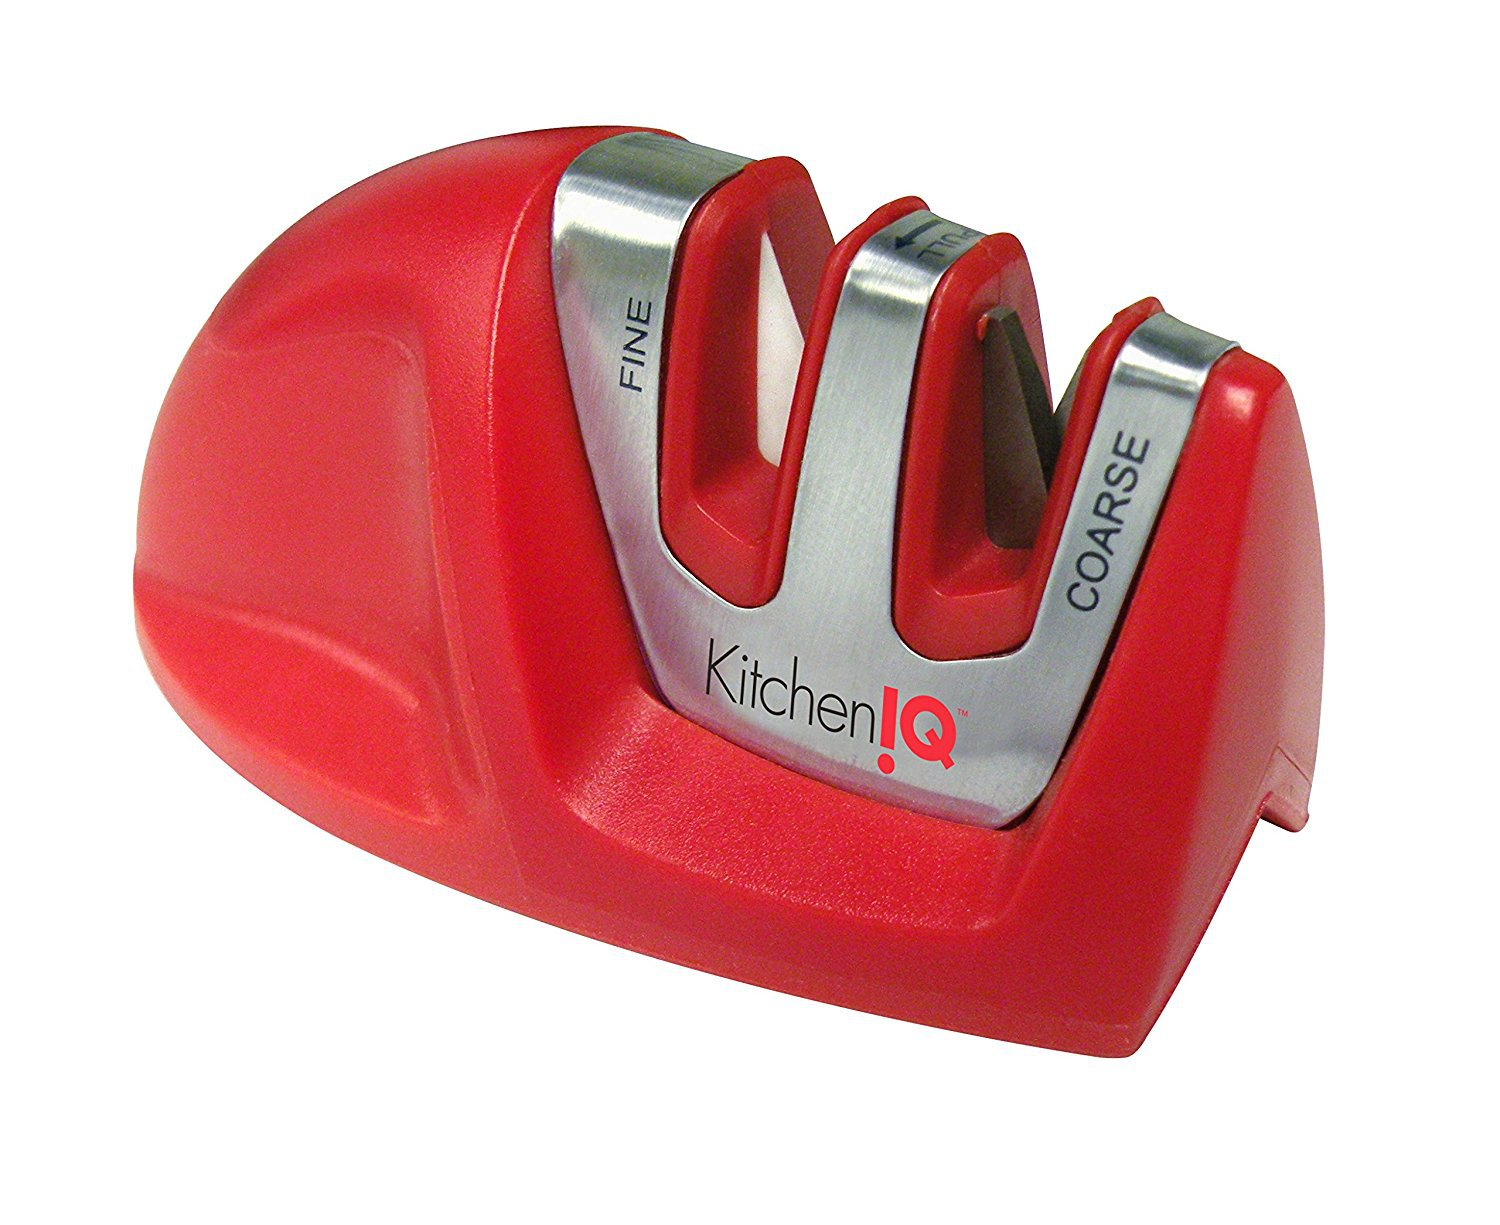 Kitchen IQ  Edge Grip 2 Stage Knife Sharpener, Red